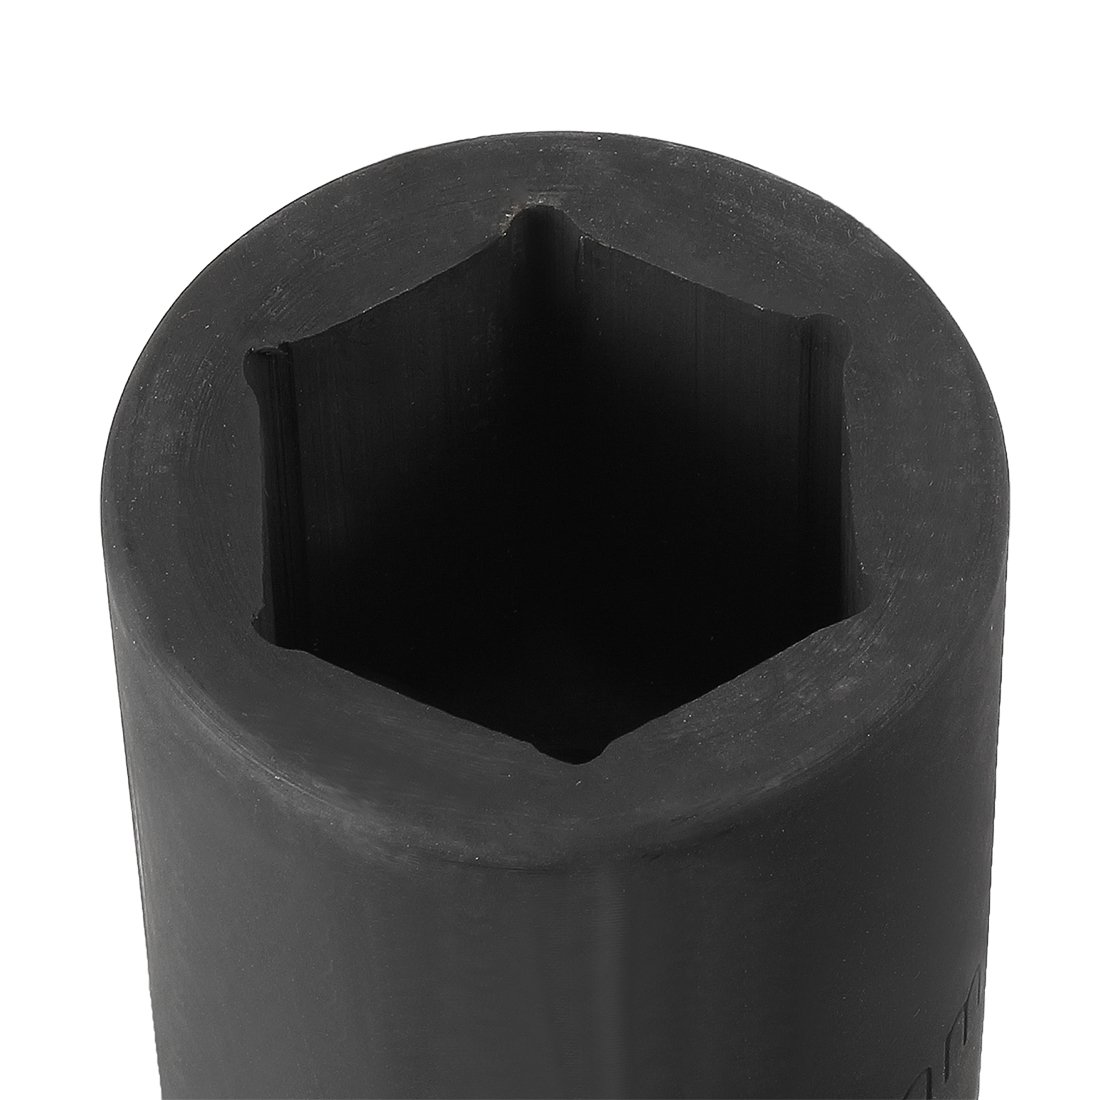 uxcell/® 3//4-inch Drive 30mm 6-Point Deep Impact Socket Cr-V Steel